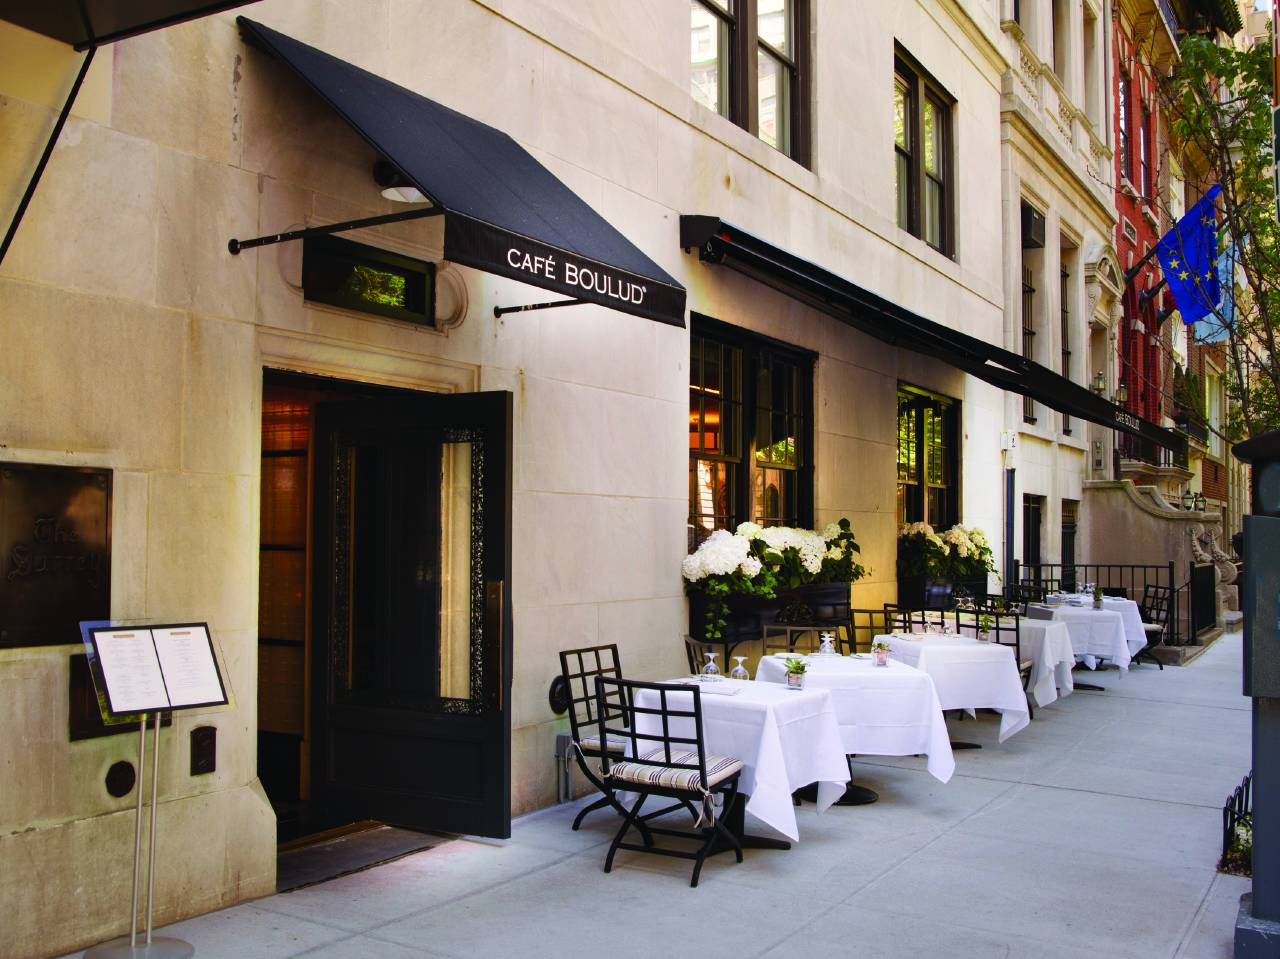 Cafe boulud the official guide to new york city for Places to visit outside of new york city